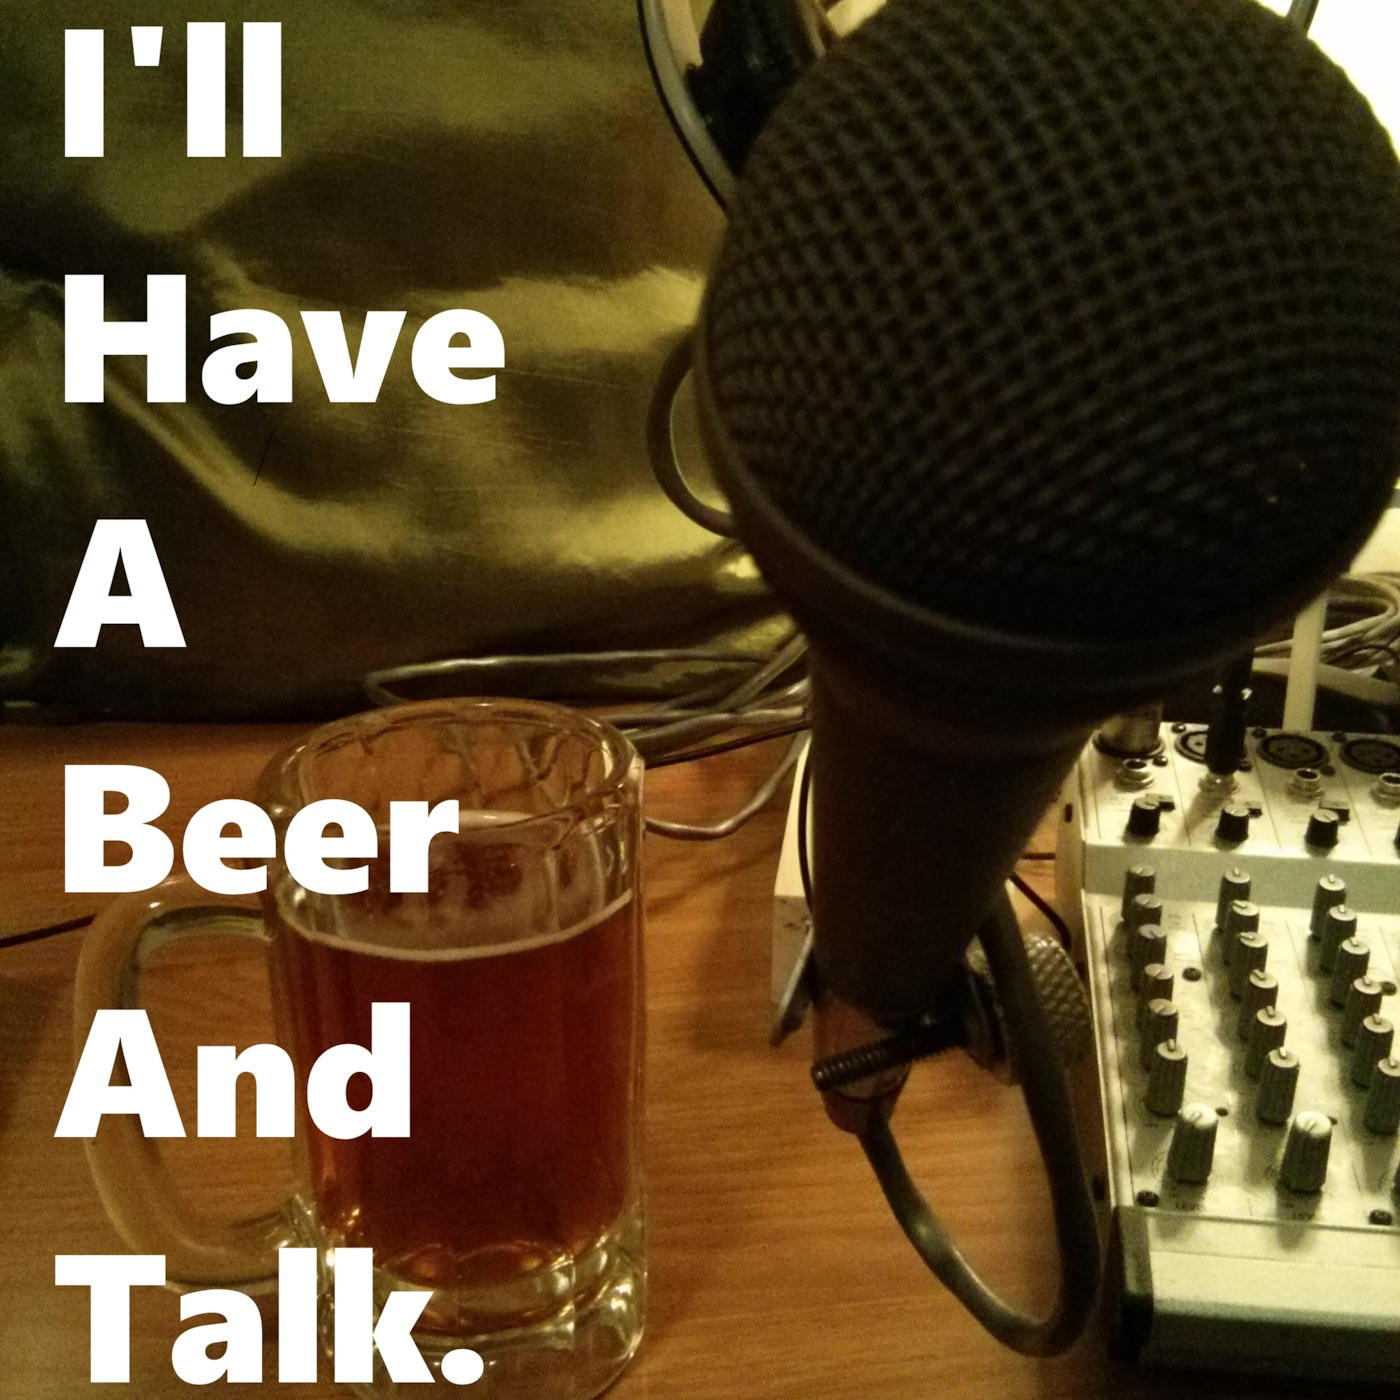 I'll Have A Beer And Talk